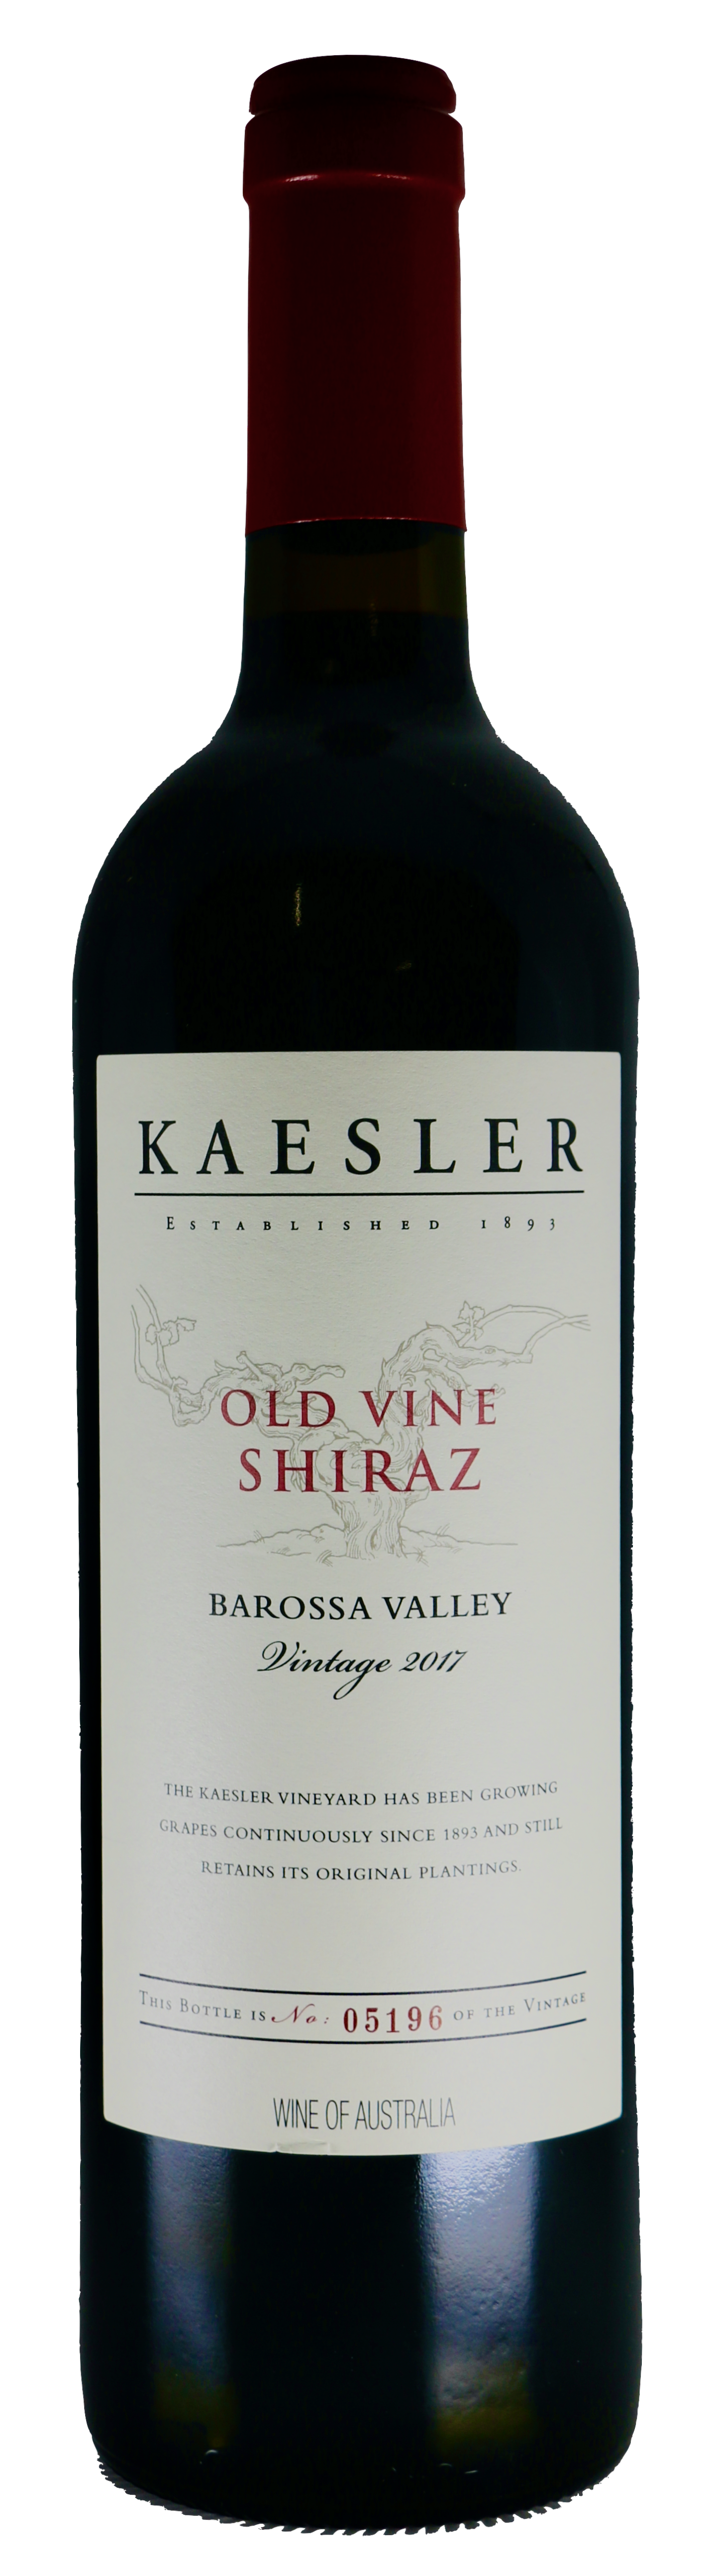 Old Vine Shiraz